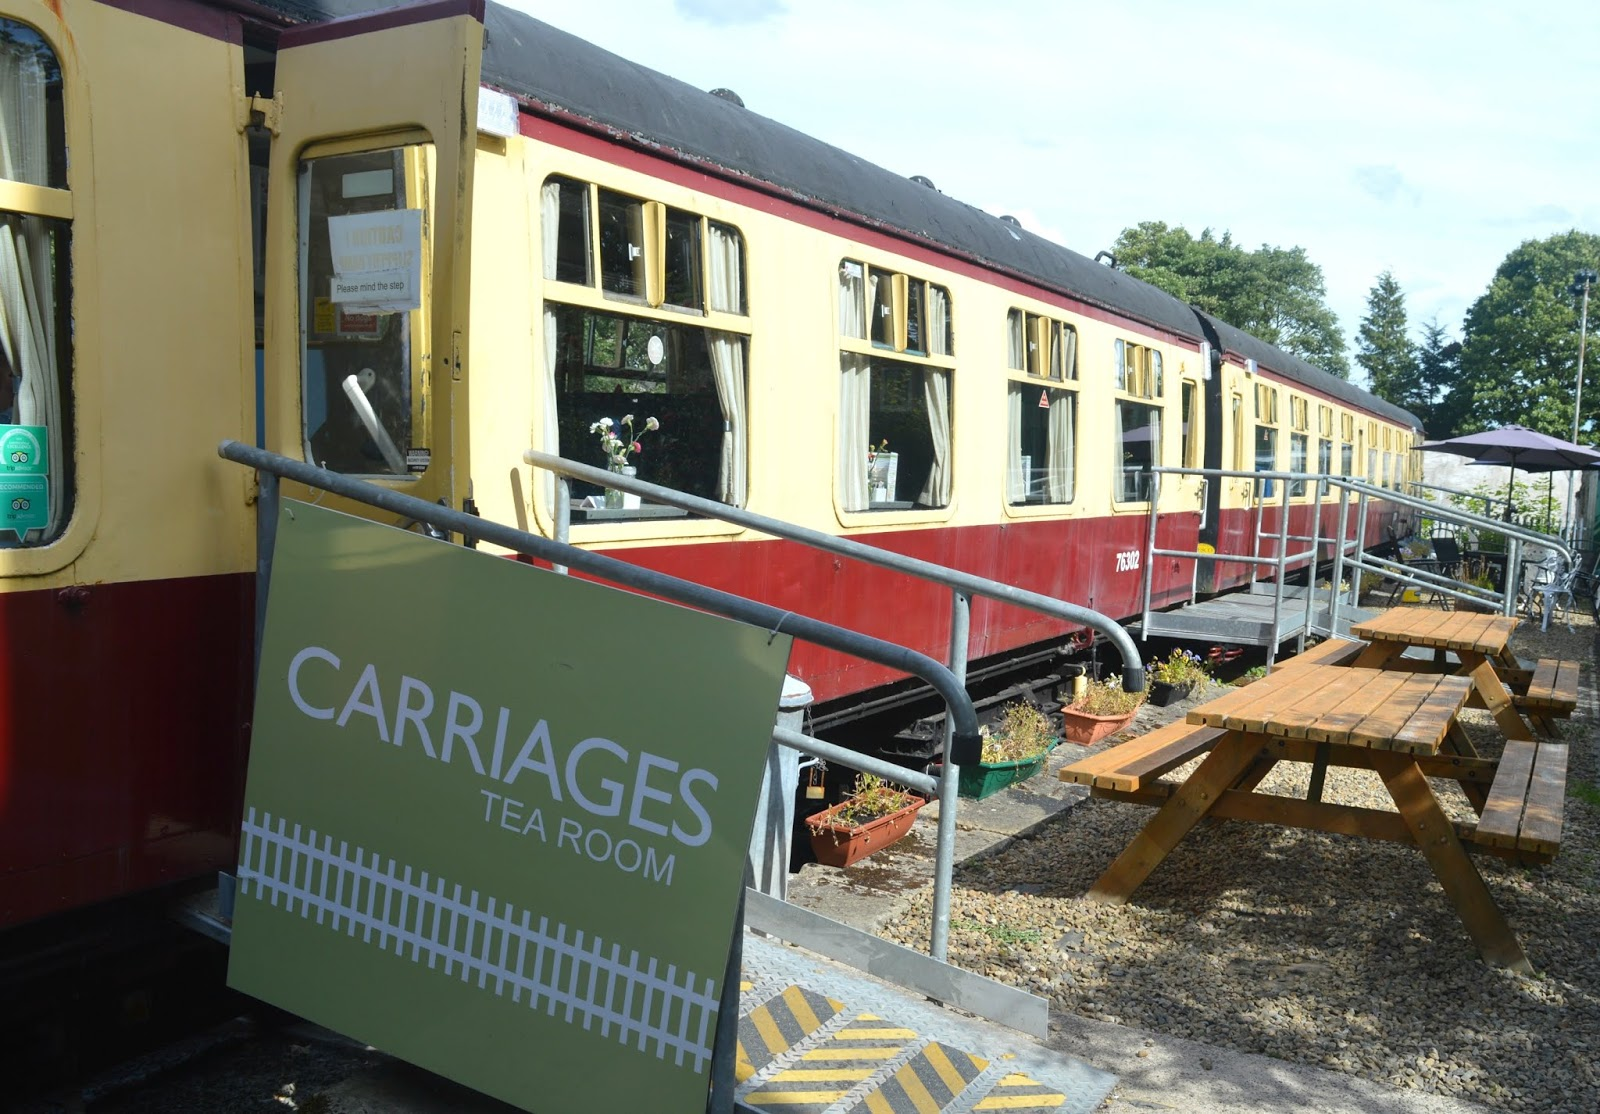 Bellingham - Carriages Tea Room